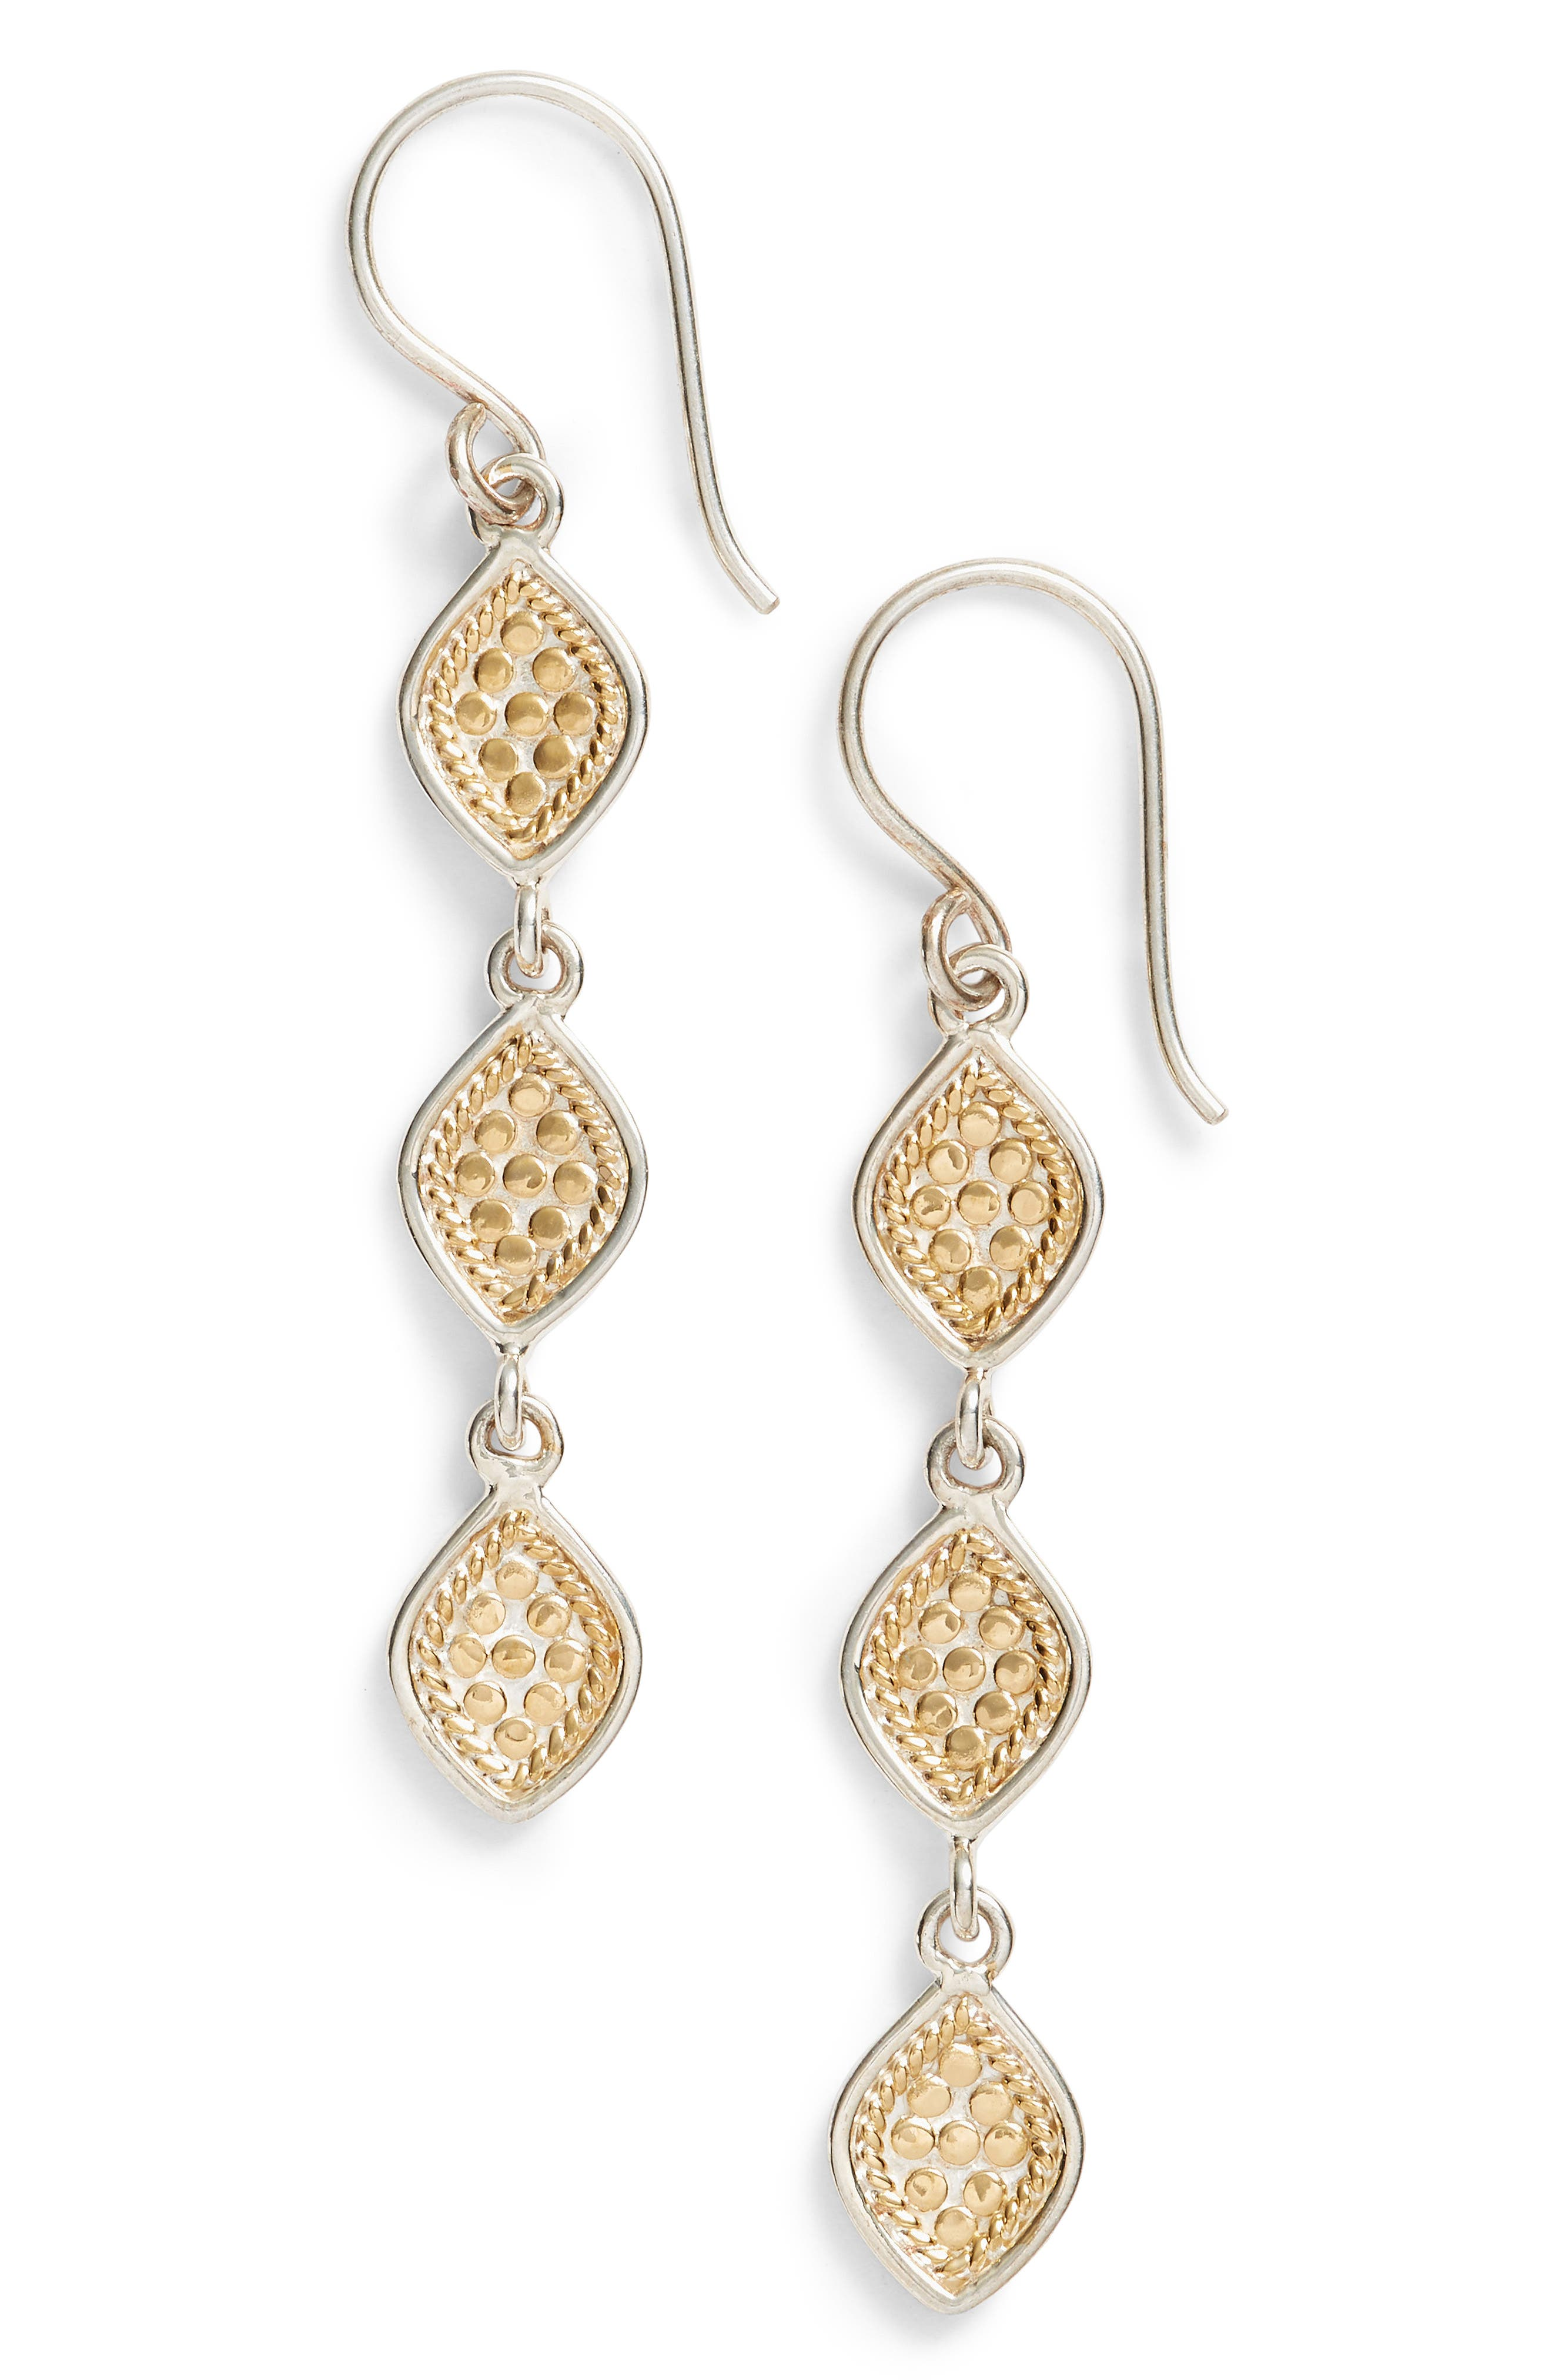 Main Image - Anna Beck Linear Earrings